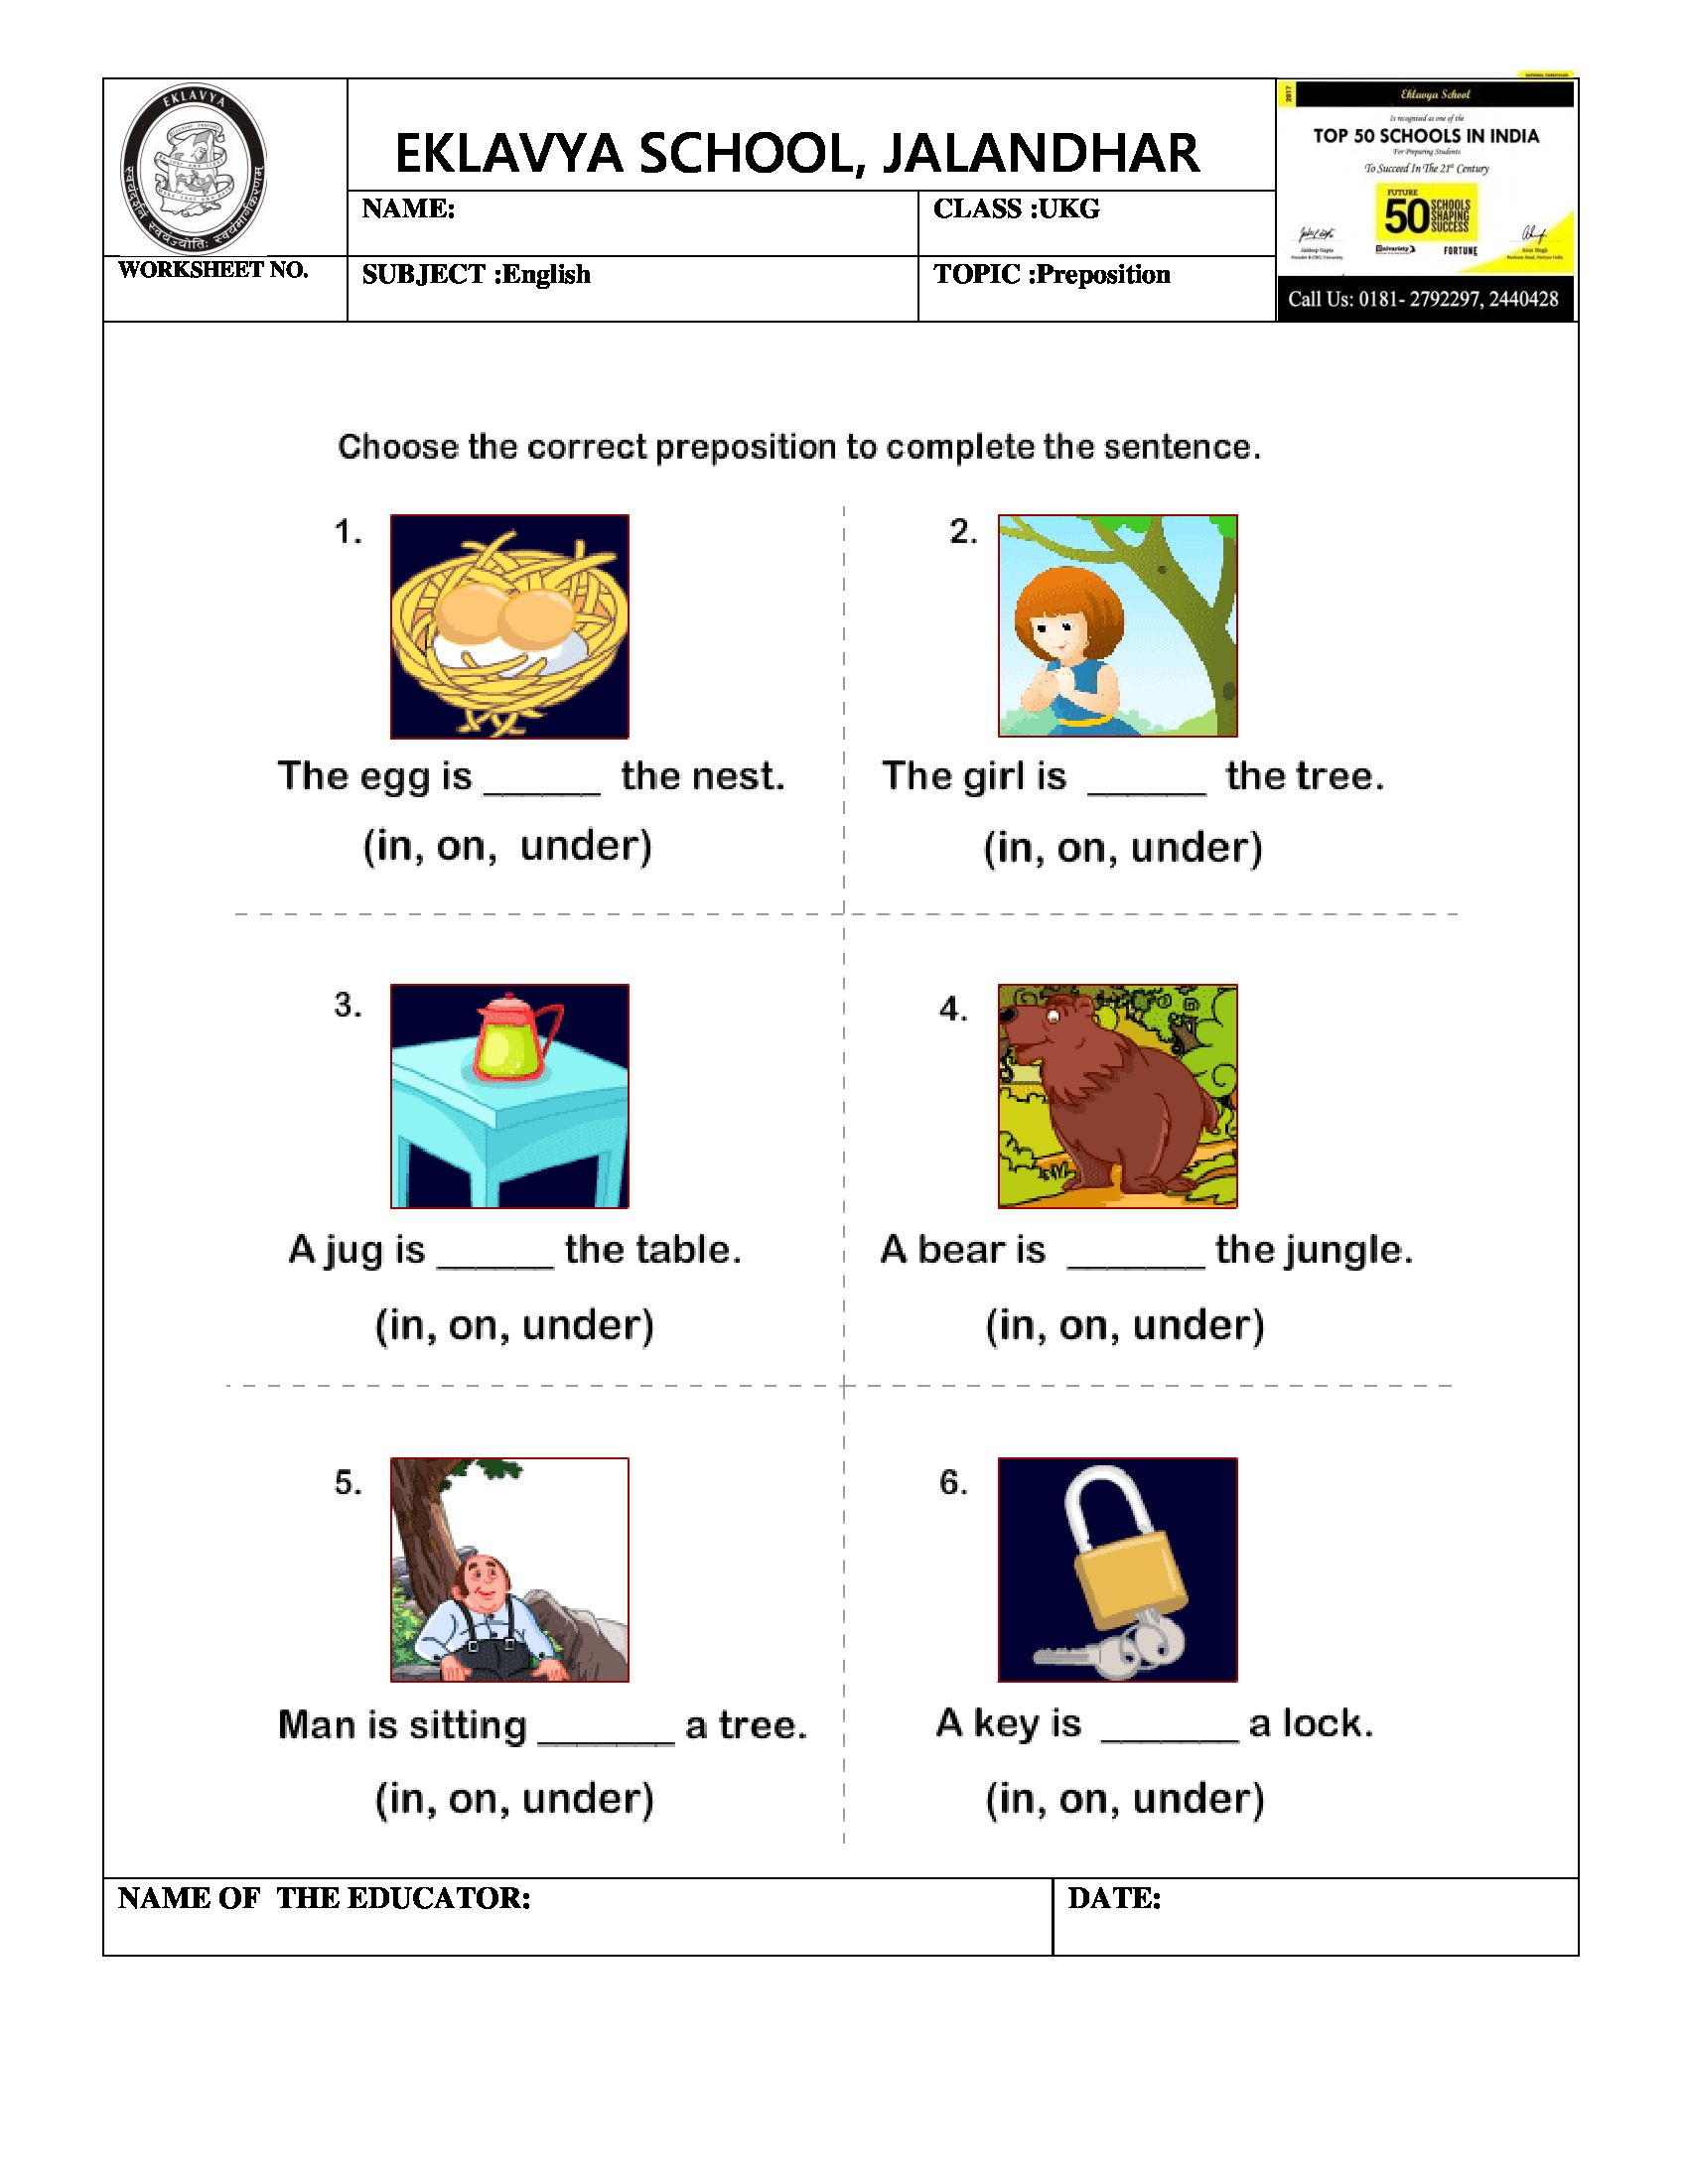 Worksheet on Preposition Prepositions, Preposition